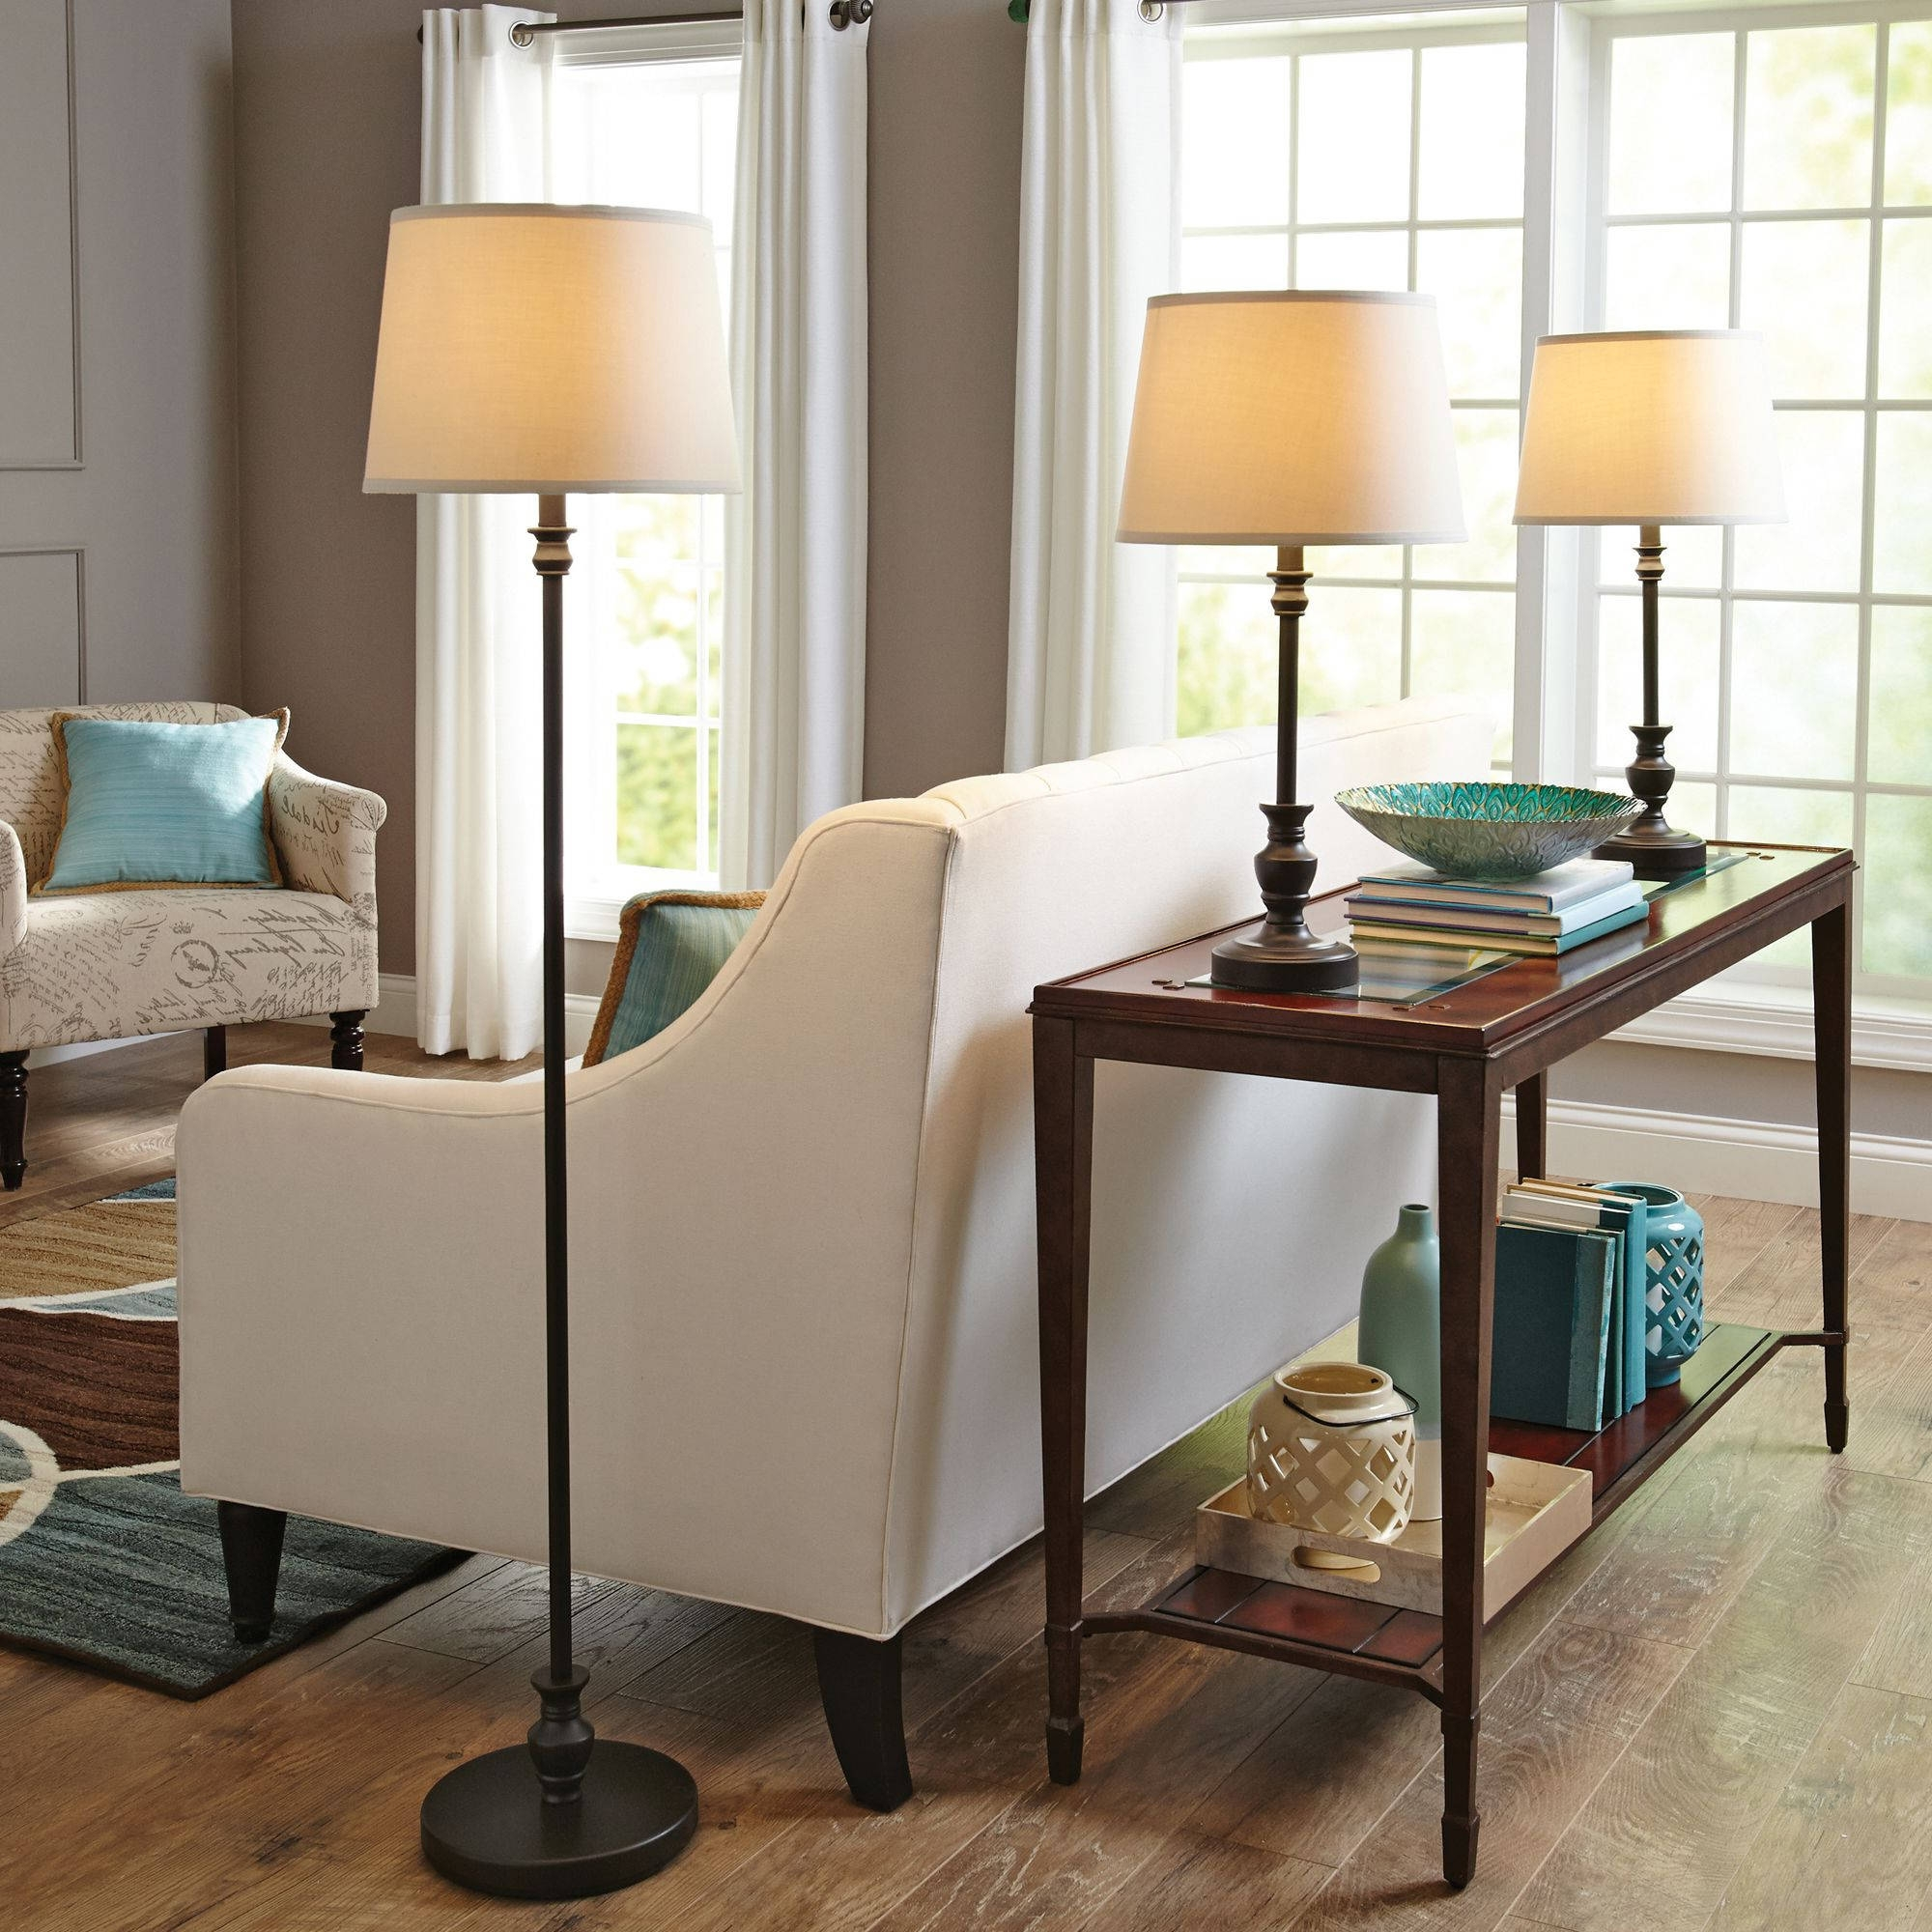 Trendy Set Of 2 Living Room Table Lamps Inside Living Room Lamp Sets New Better Homes & Gardens 3 Piece Lamp Set (View 18 of 20)